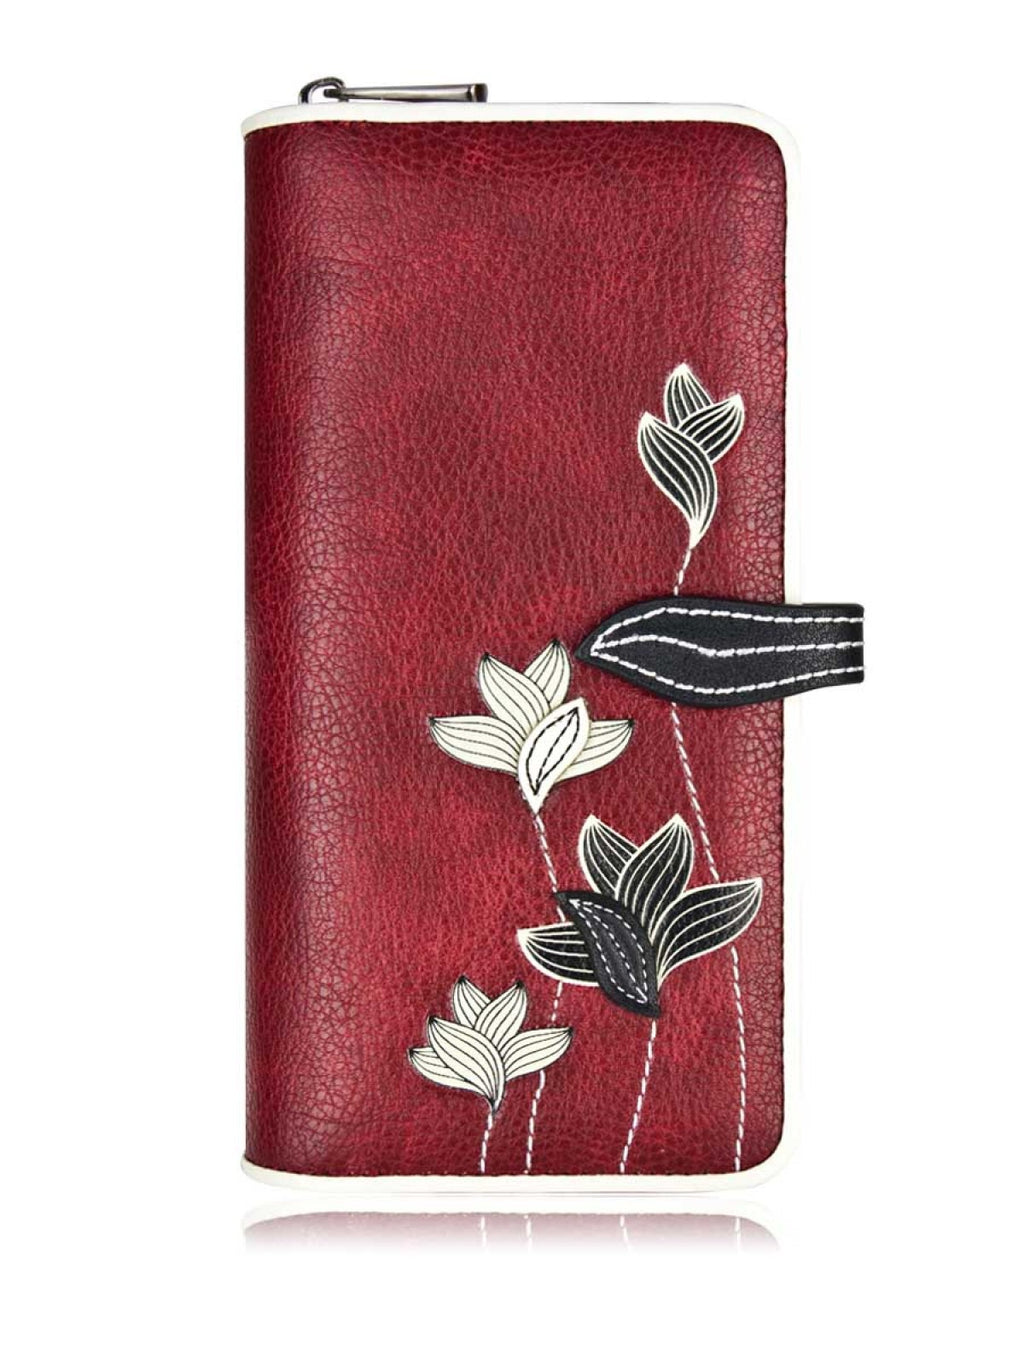 Lotus Clutch Wallet - Red